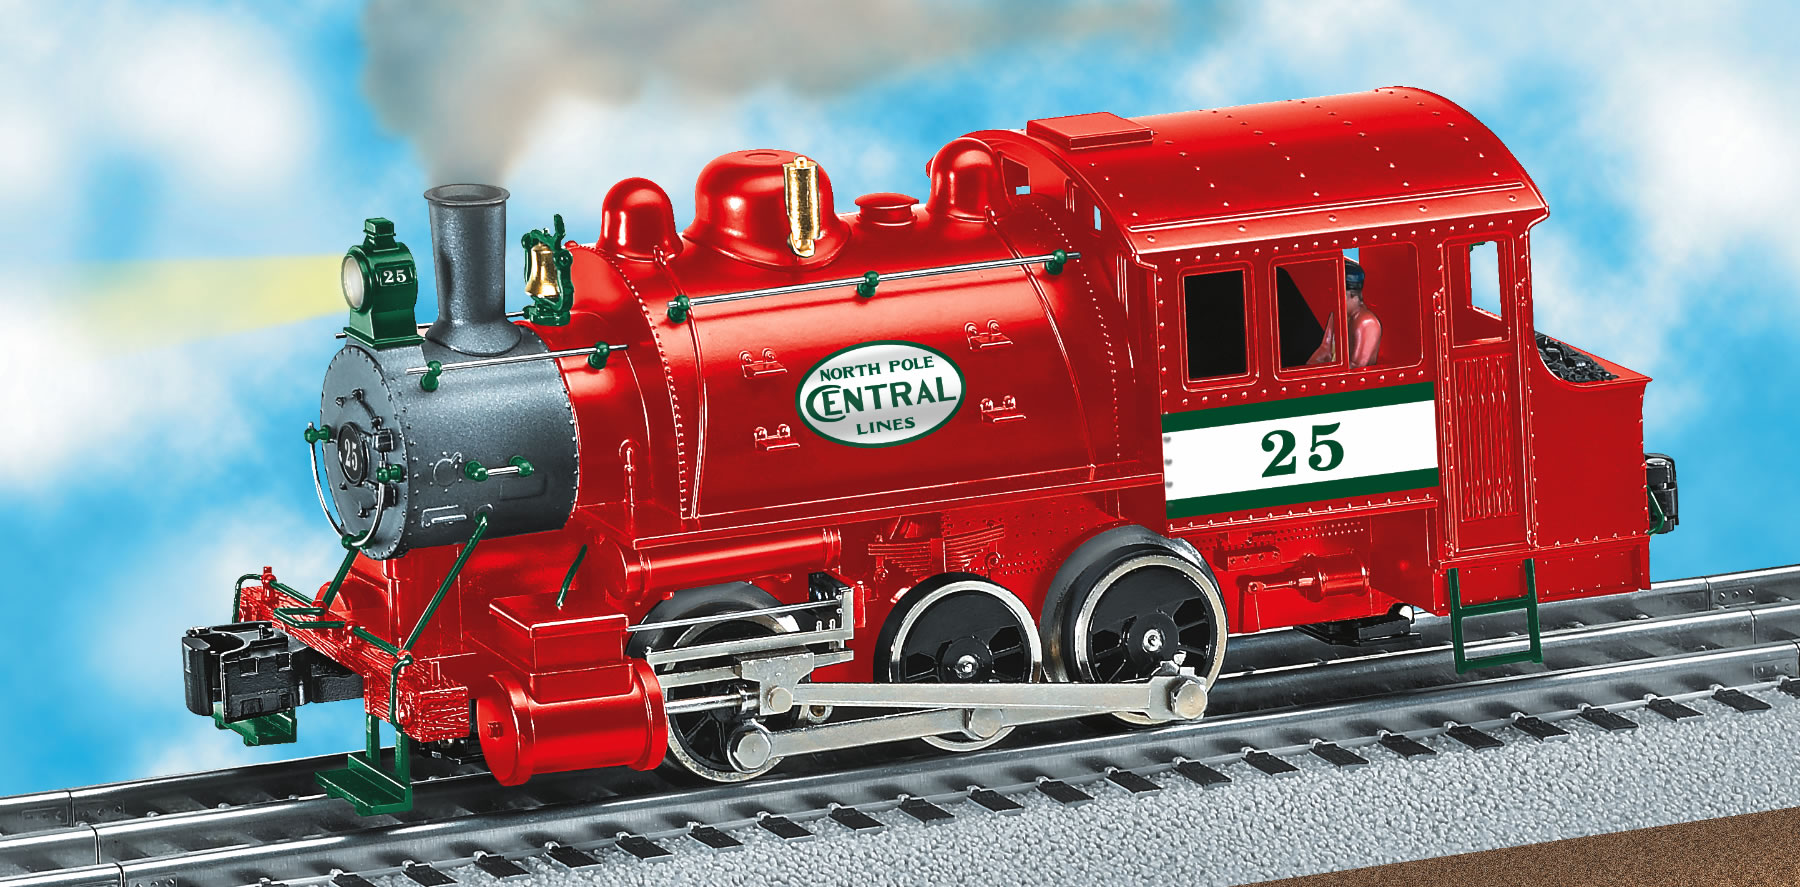 North Pole Central Lines Dockside Switcher 25